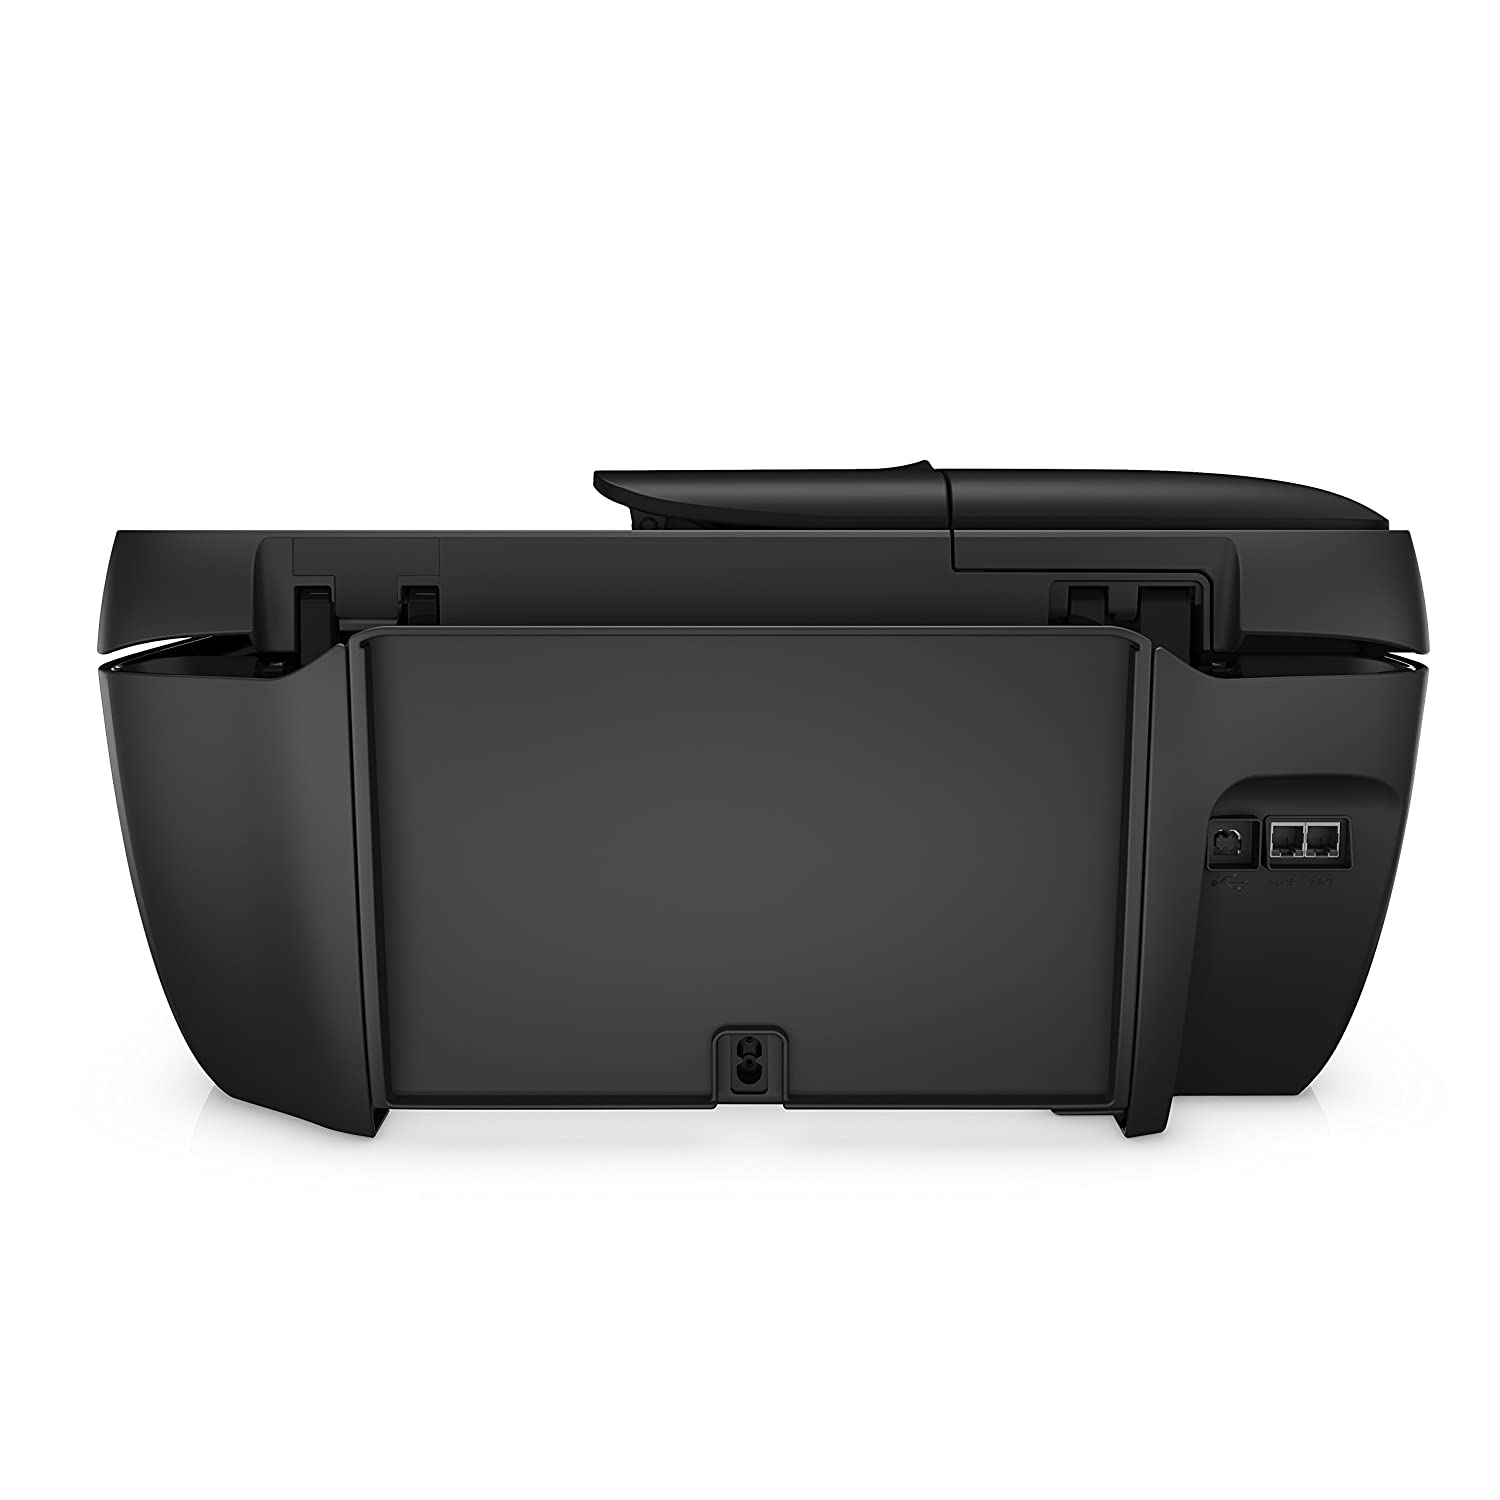 Amazon.com: Imprimante Multifonction HP Officejet Pro 3831 ...